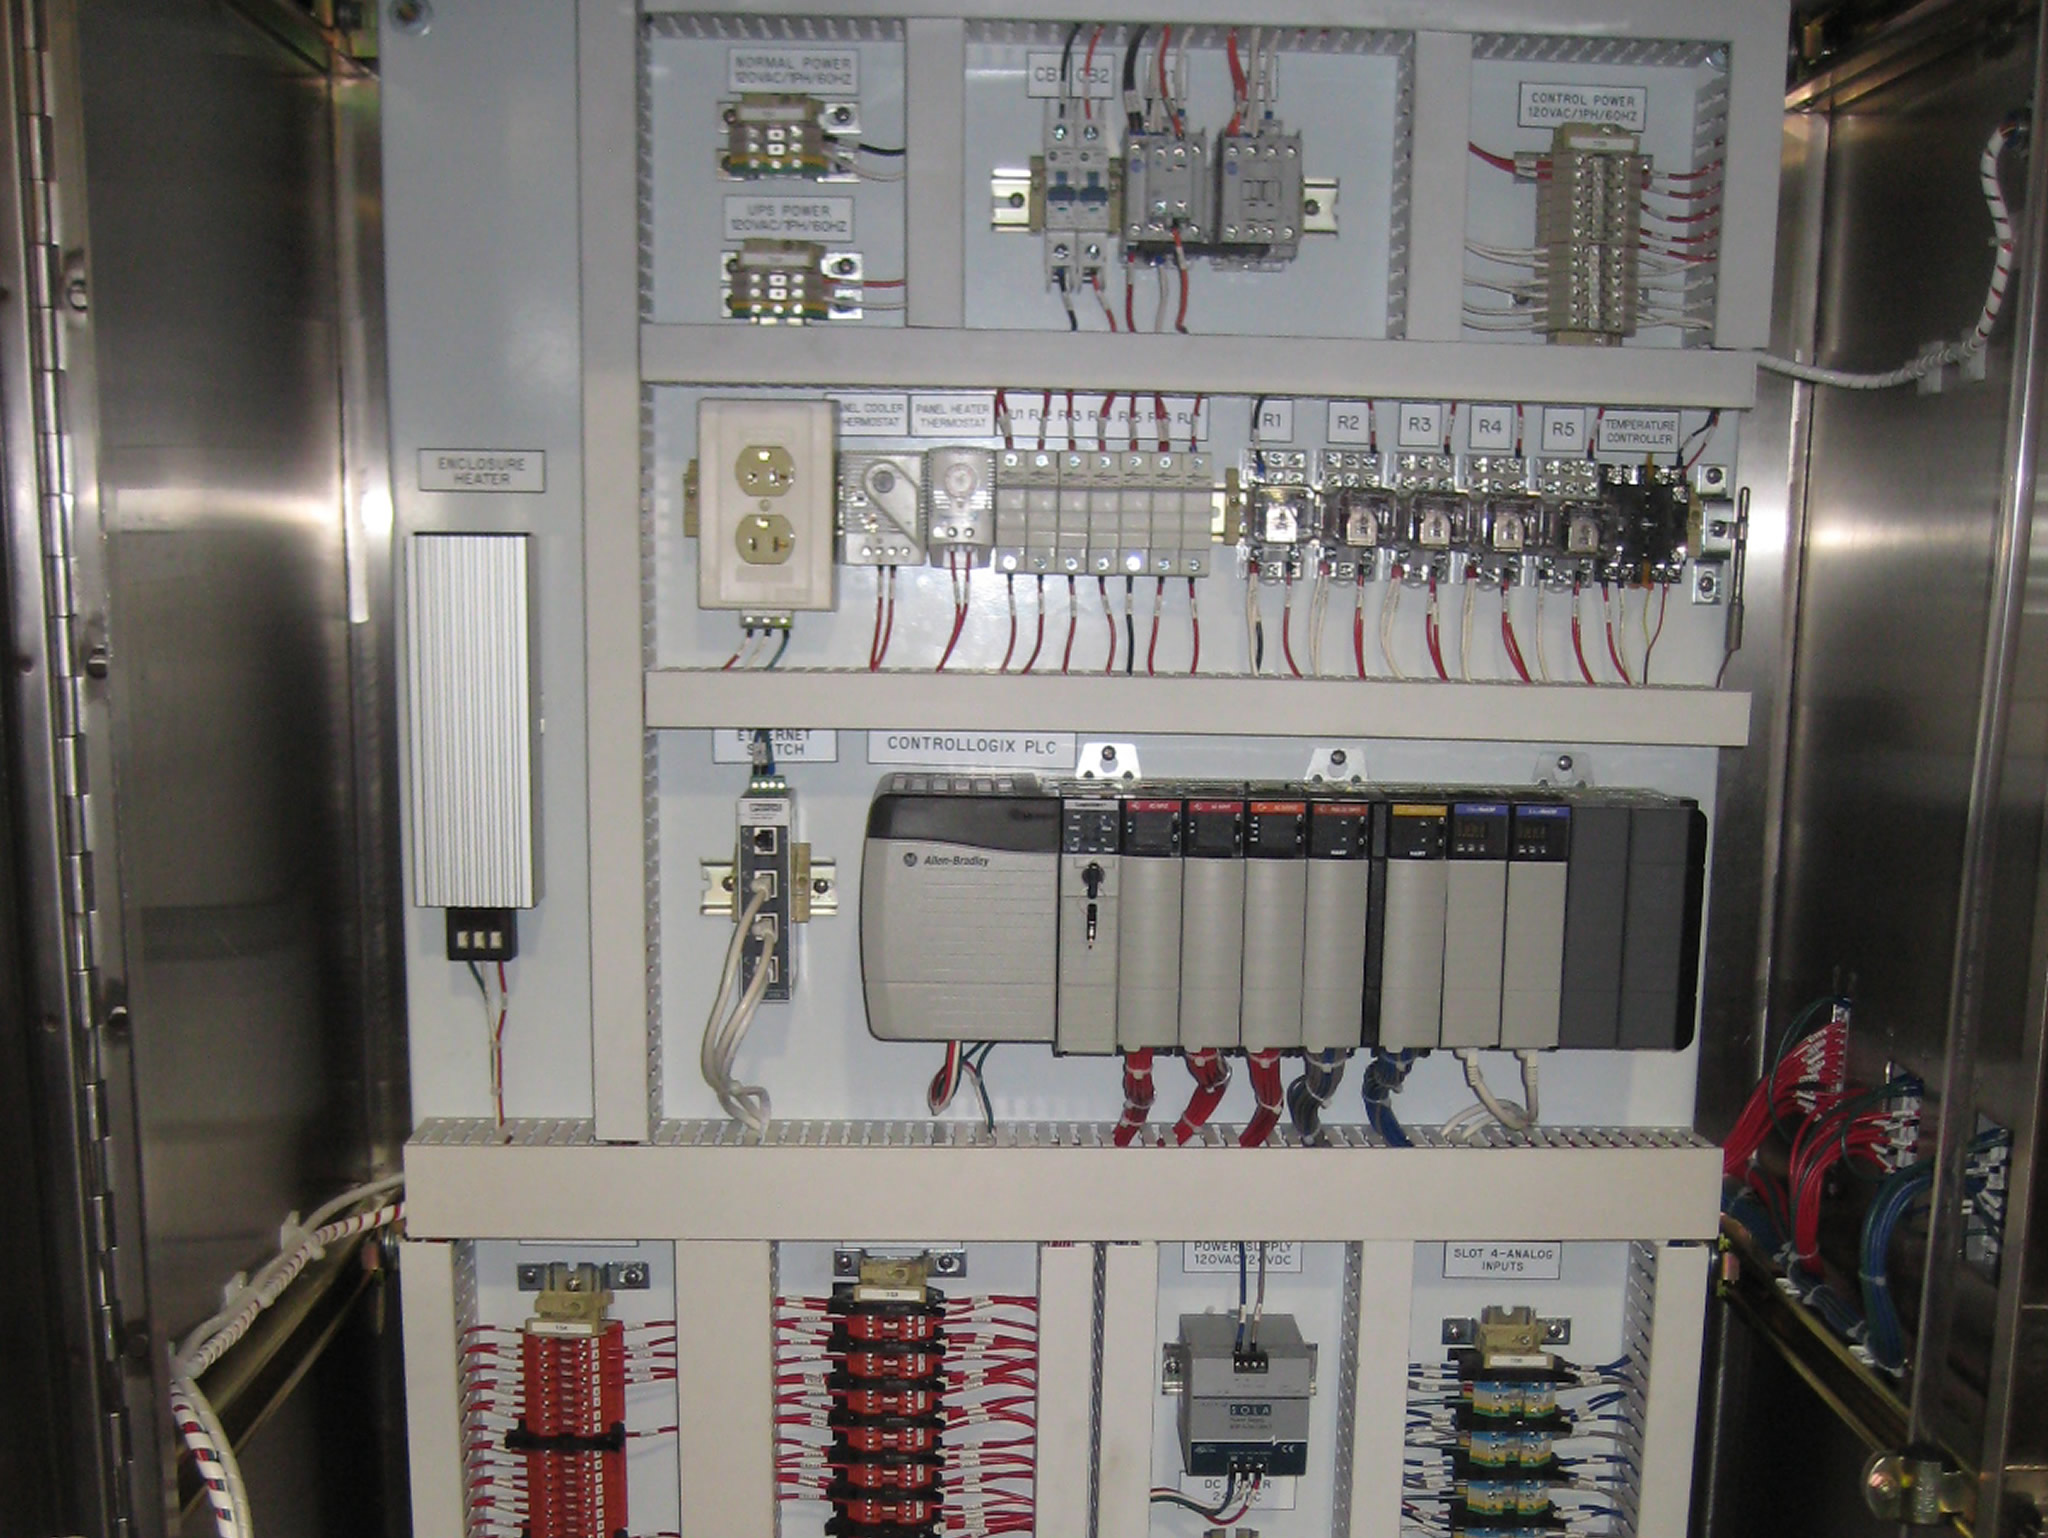 plc control panel wiring diagram plc image wiring plc control panel wiring solidfonts on plc control panel wiring diagram